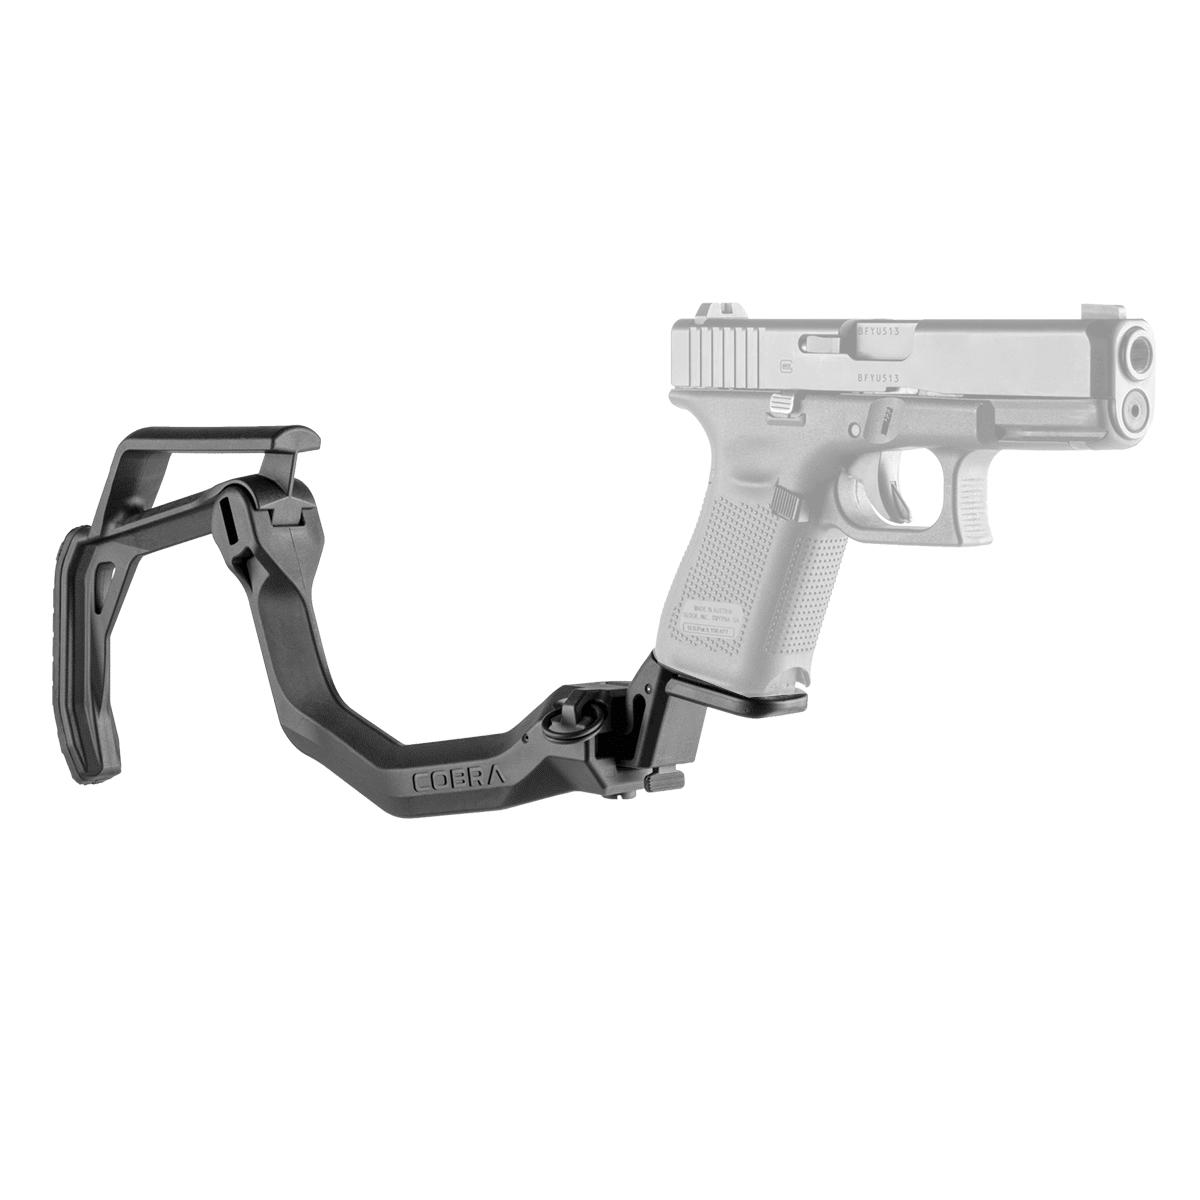 Magorui Collapsible Tactical Cobra Stock For Glock 17-19 Glock Folding Buttstock